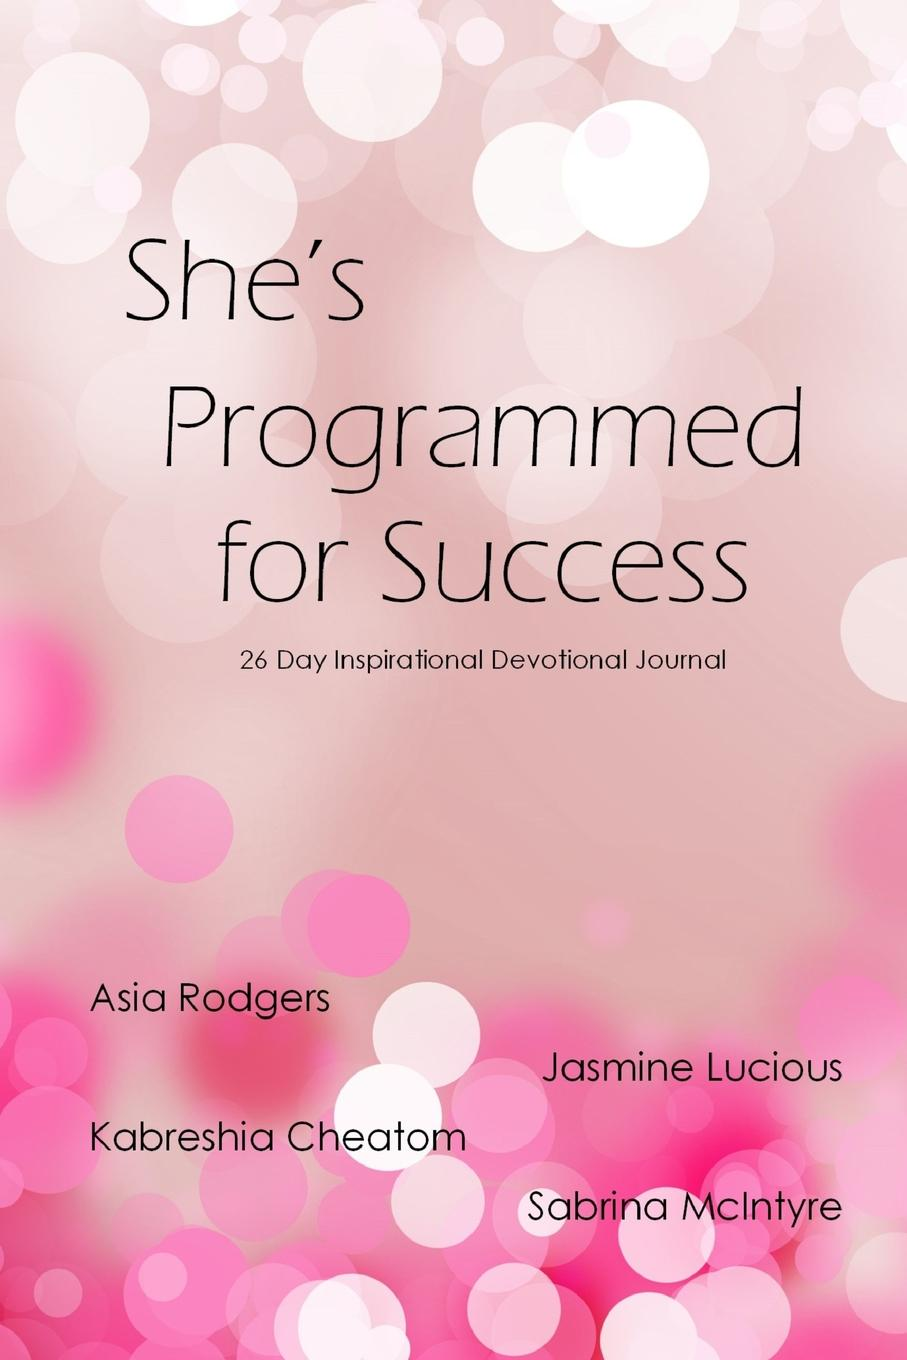 Asia Rodgers, Kabreshia Cheatom, Jasmine Lucious She.s is Programmed for Success these days are ours